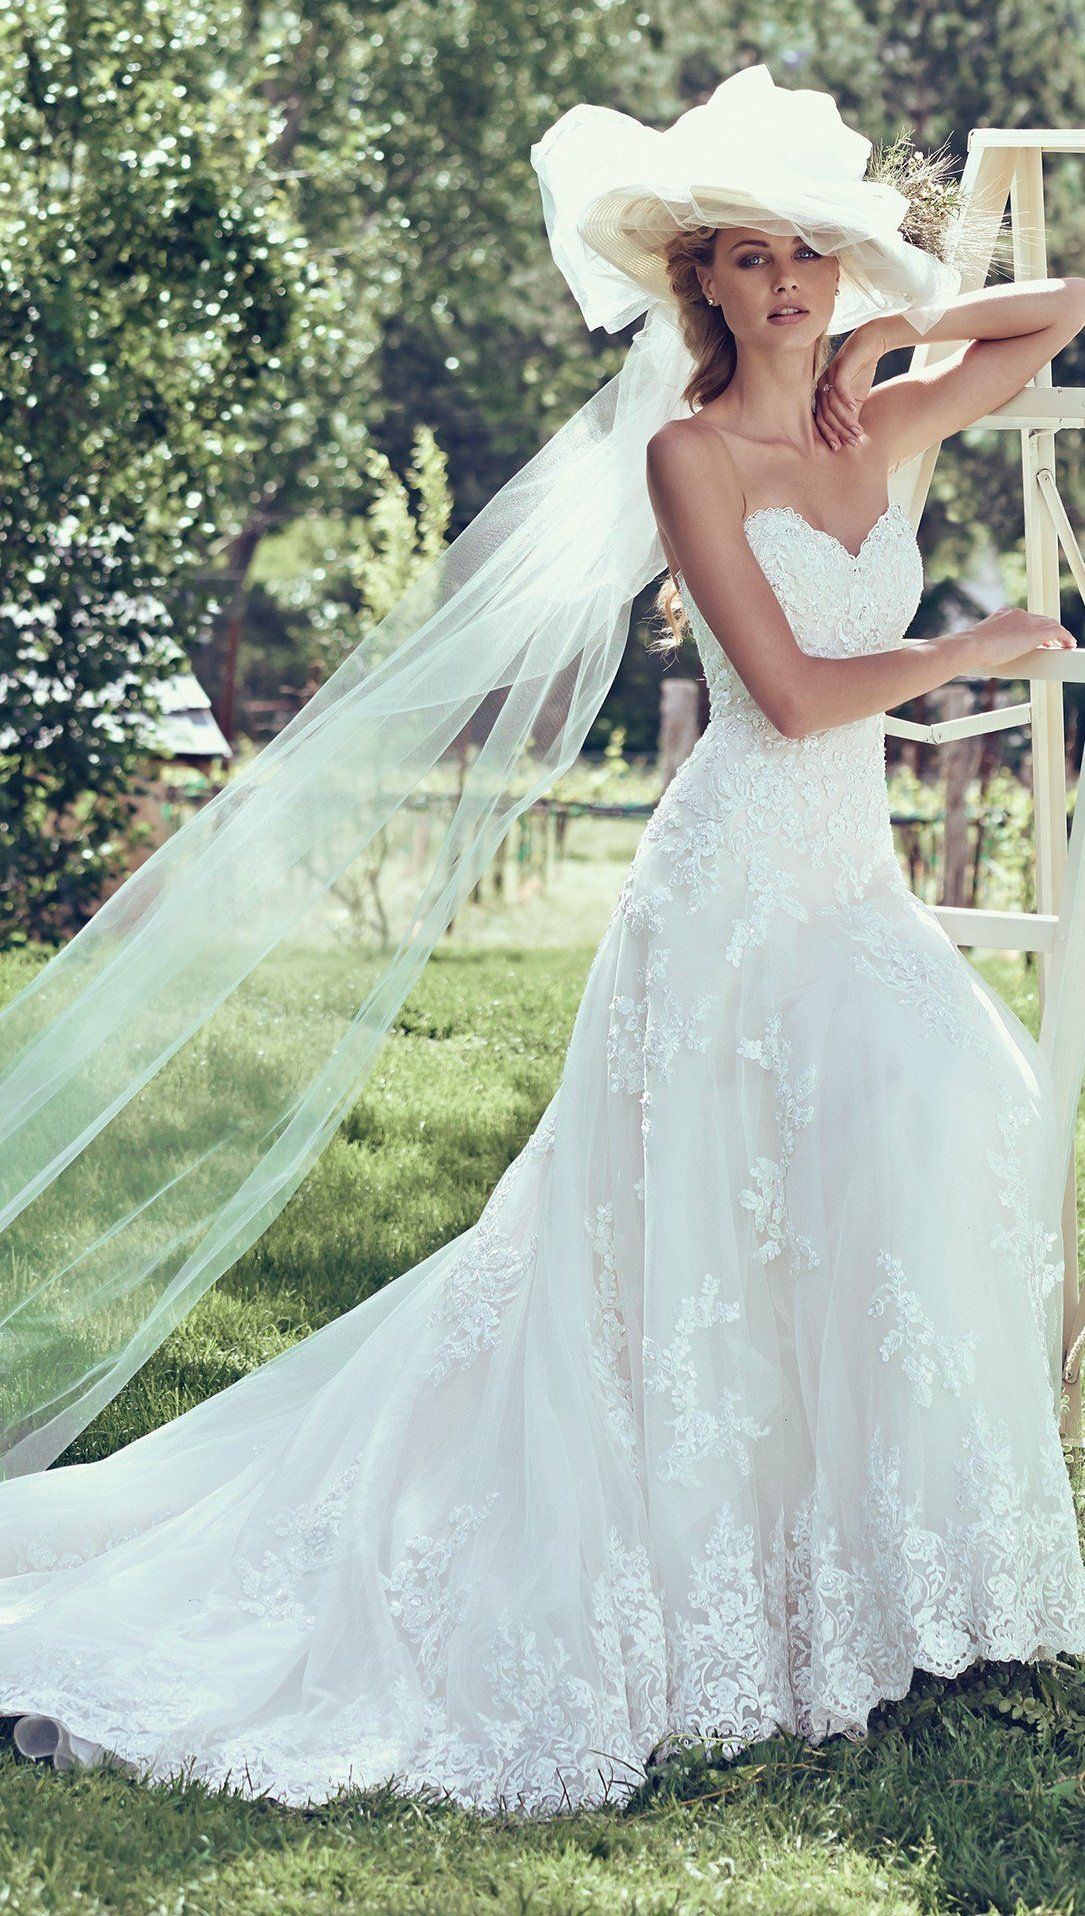 Wedding Dress Fabric Guide | Maggie sottero, Lace wedding dresses ...